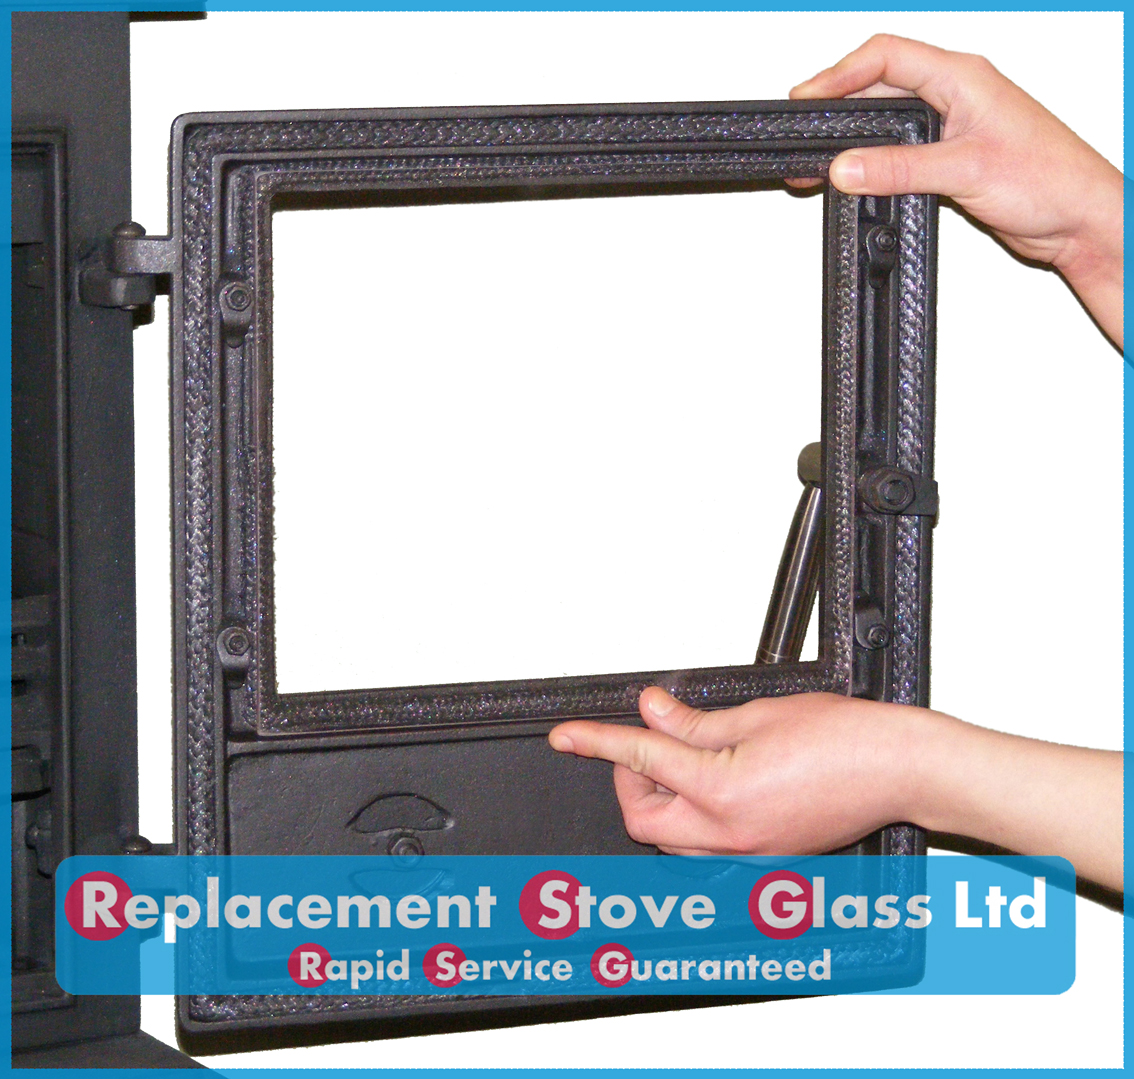 Firefox 12 - Replacement Stove Glass | Replacement Stove Glass